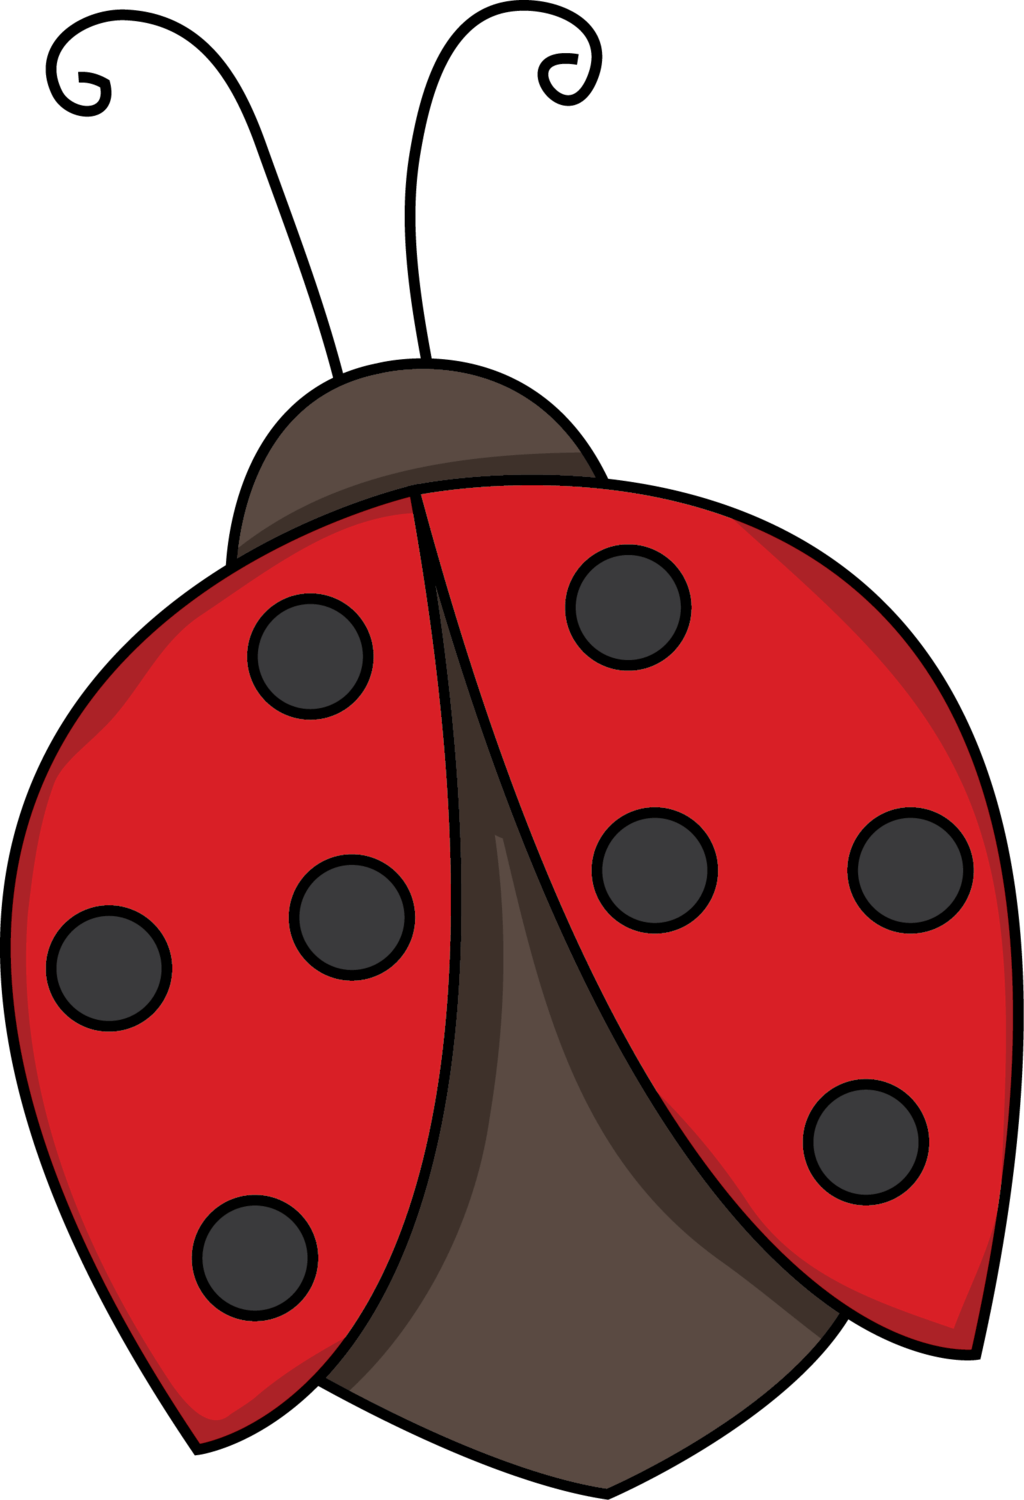 Ladybugs clipart symmetrical. Free three little pigs